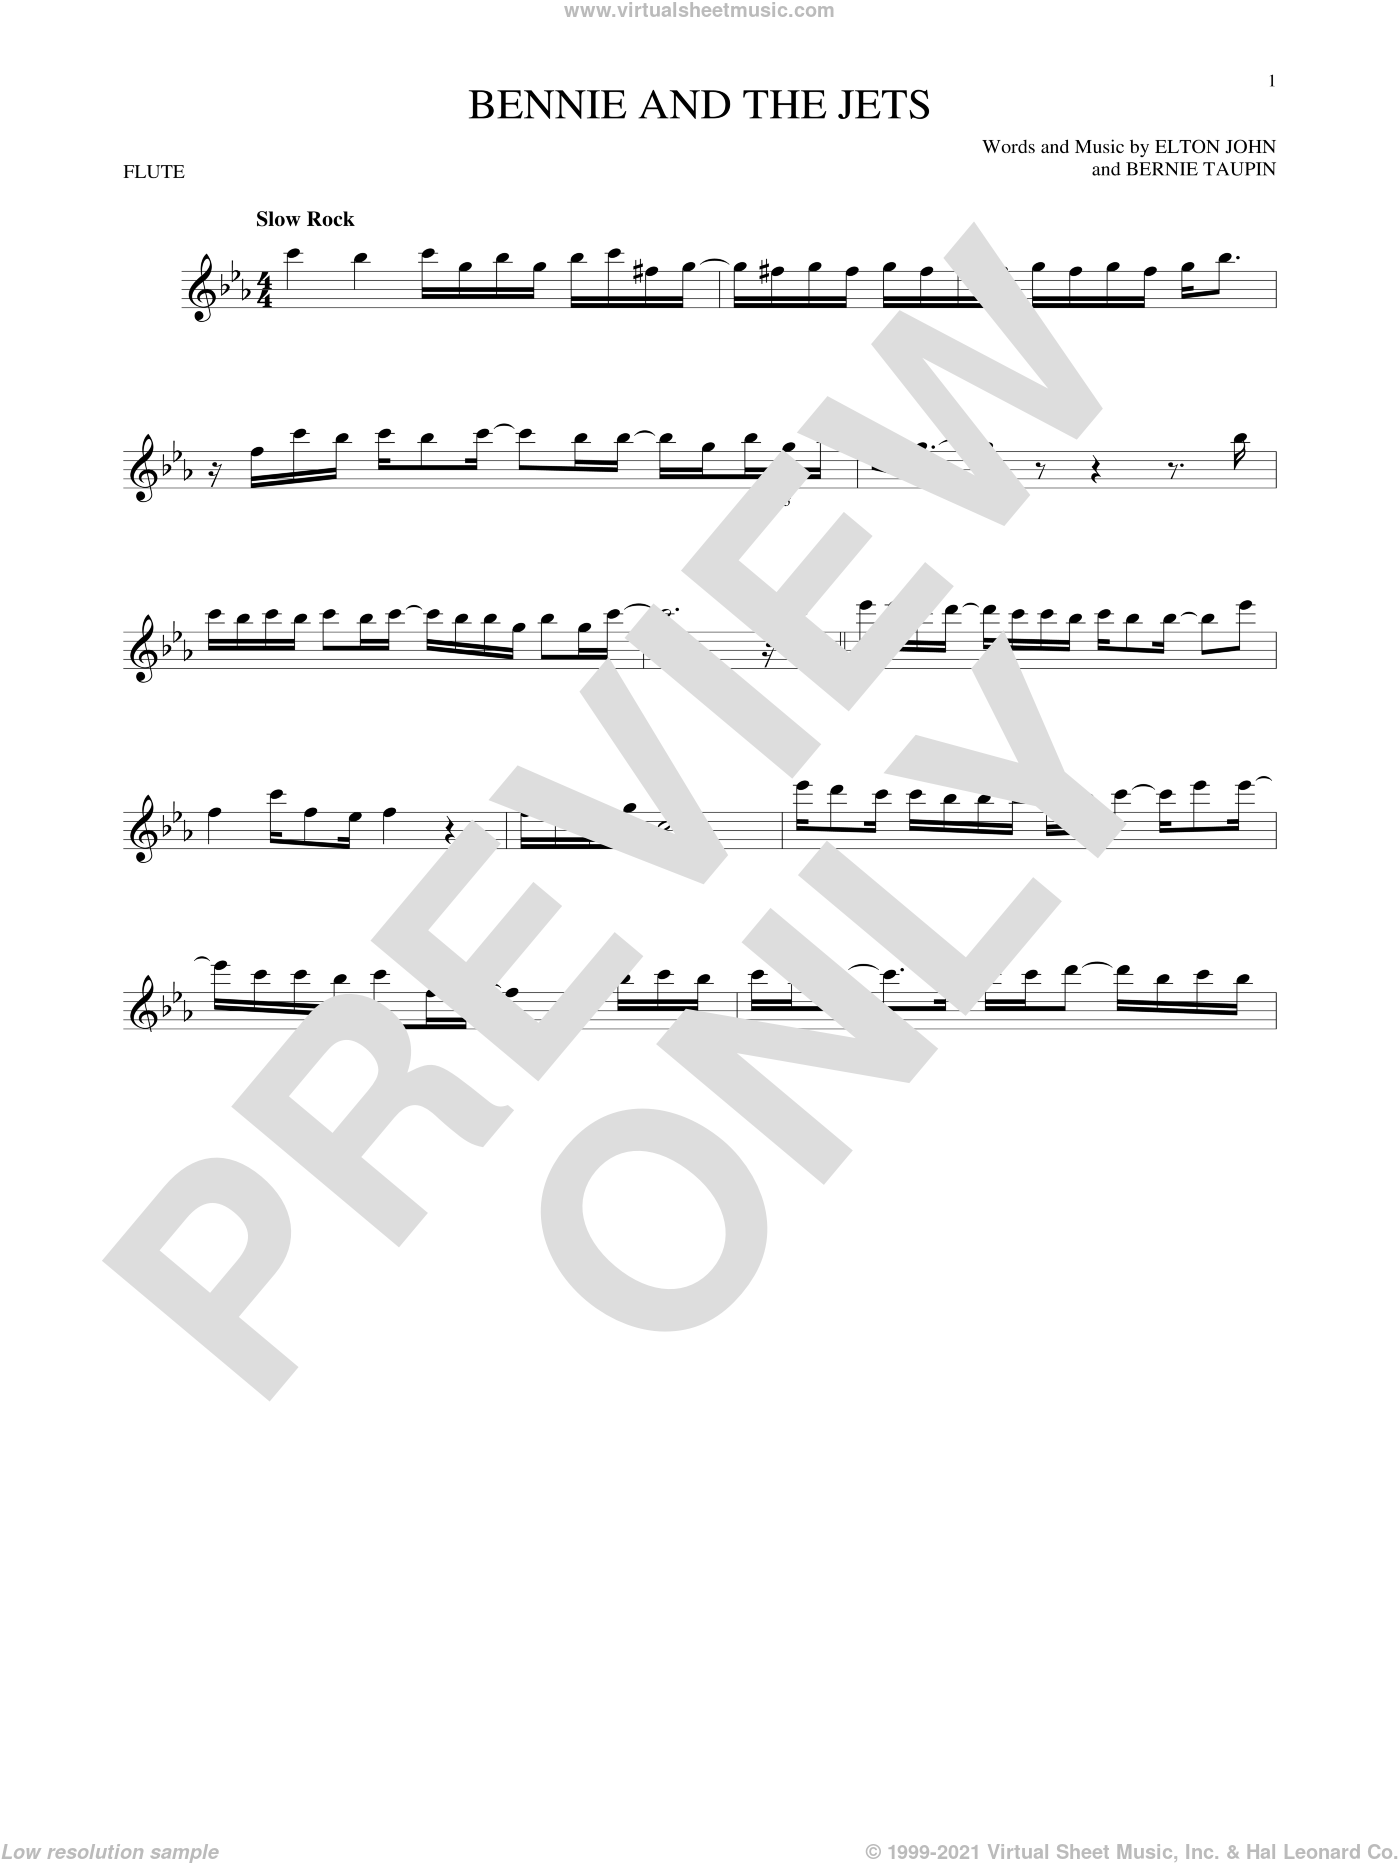 Bennie And The Jets sheet music for flute solo by Elton John and Bernie Taupin, intermediate skill level